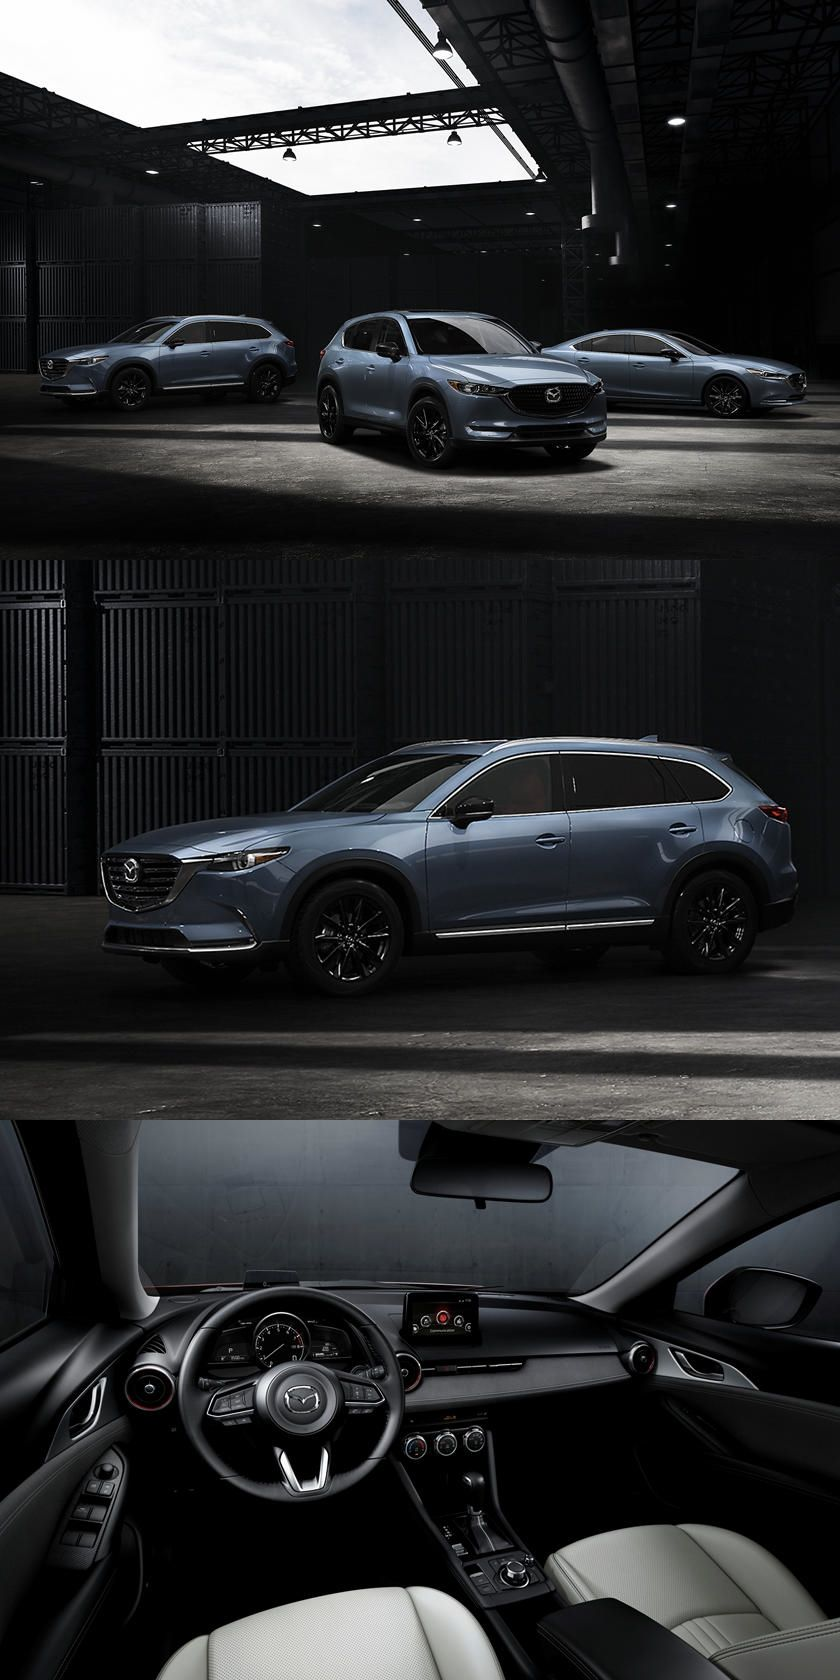 Mazda Brings Special Carbon Editions To Three Popular Models Does This Mean New Models Are Coming Soon Mazda New Cars Car Paint Colors